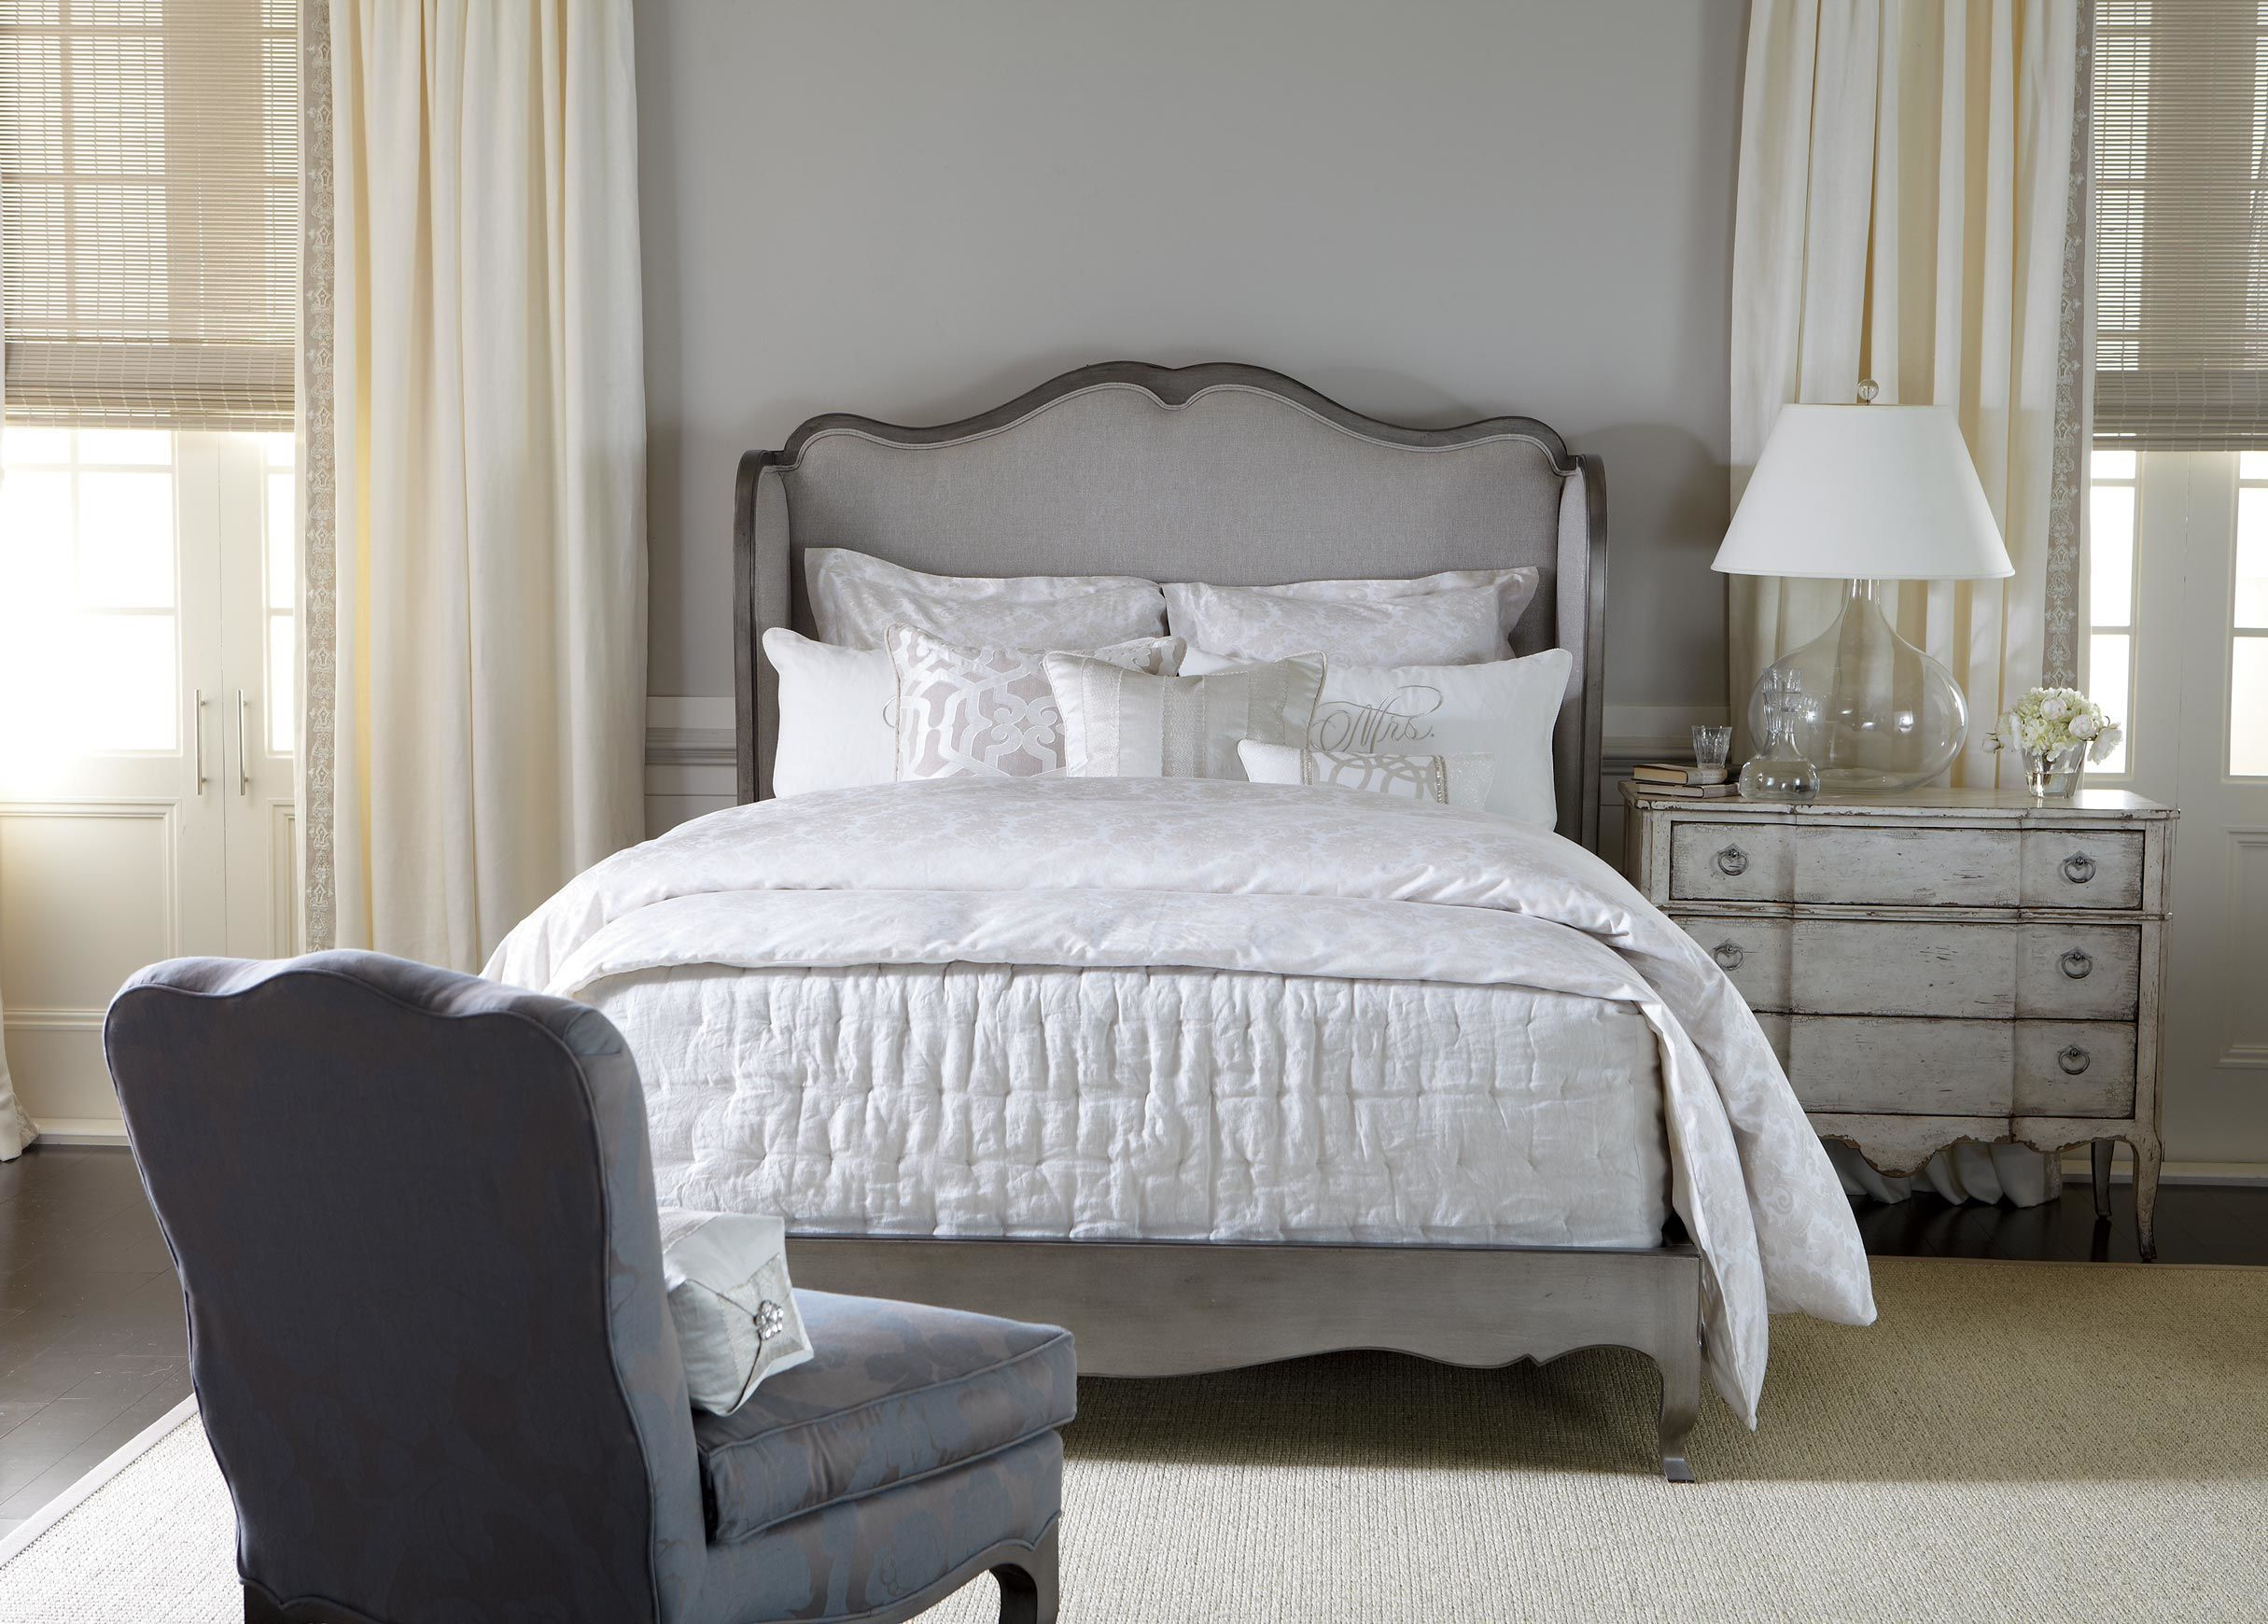 ethan allen bedroom set. Beau Bed with Low Footboard  Beds Ethan Allen Bedroom BedBedroom FurnitureBedroom Home Sweet